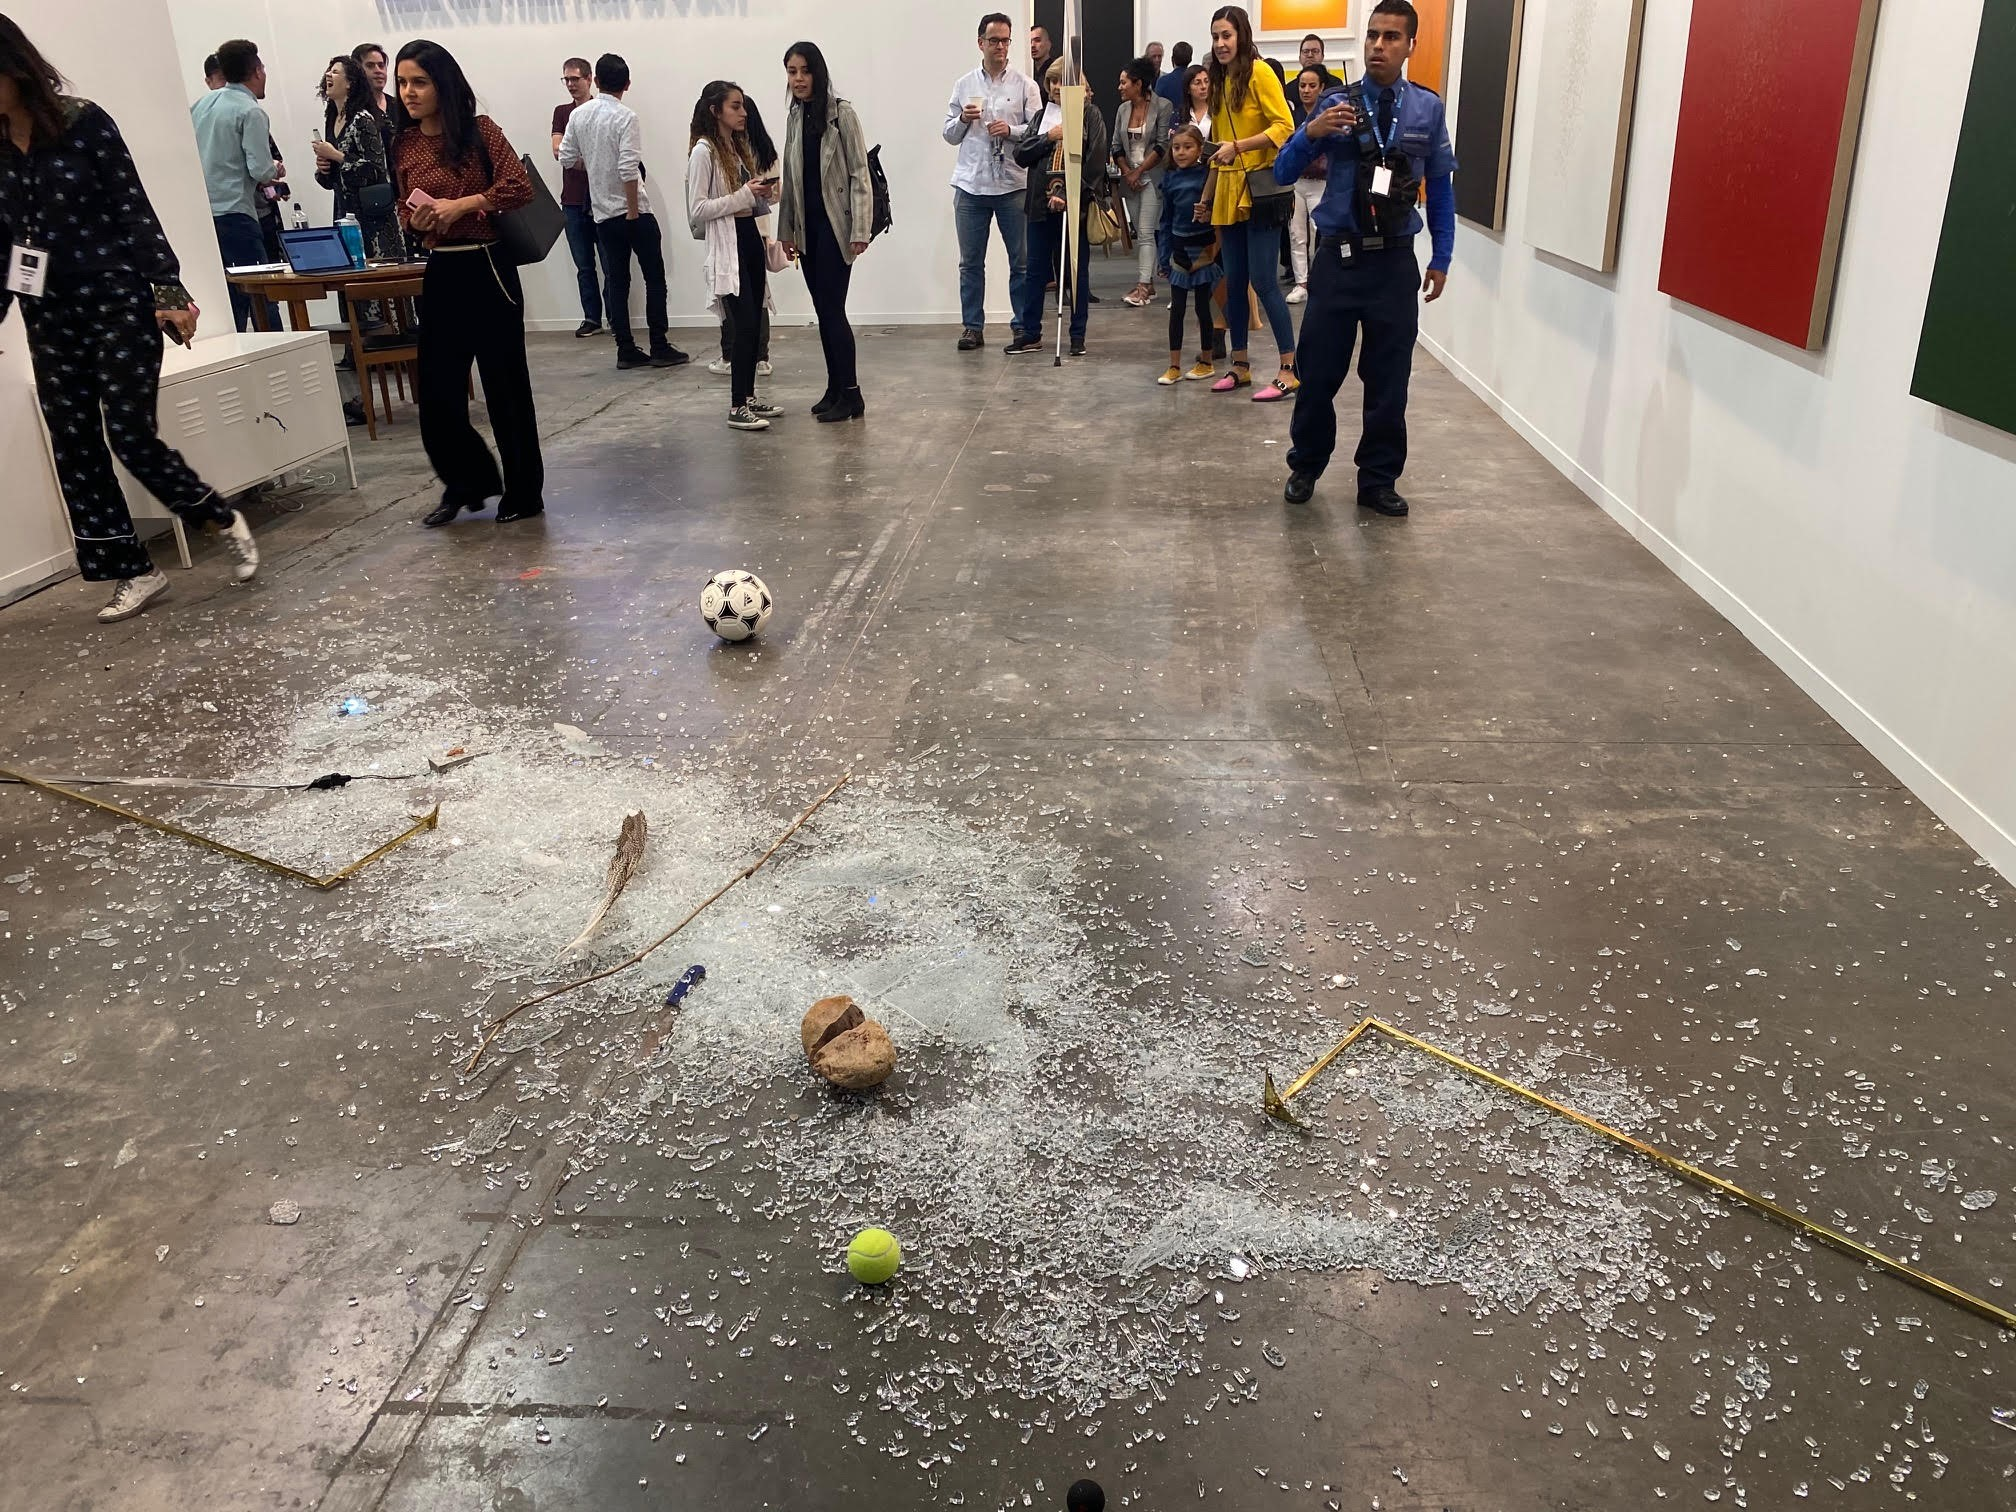 An Art Critic Accidentally Shattered A 19 000 Glass Sculpture At The Zona Maco Fair With A Wayward Can Of Coke Artnet News